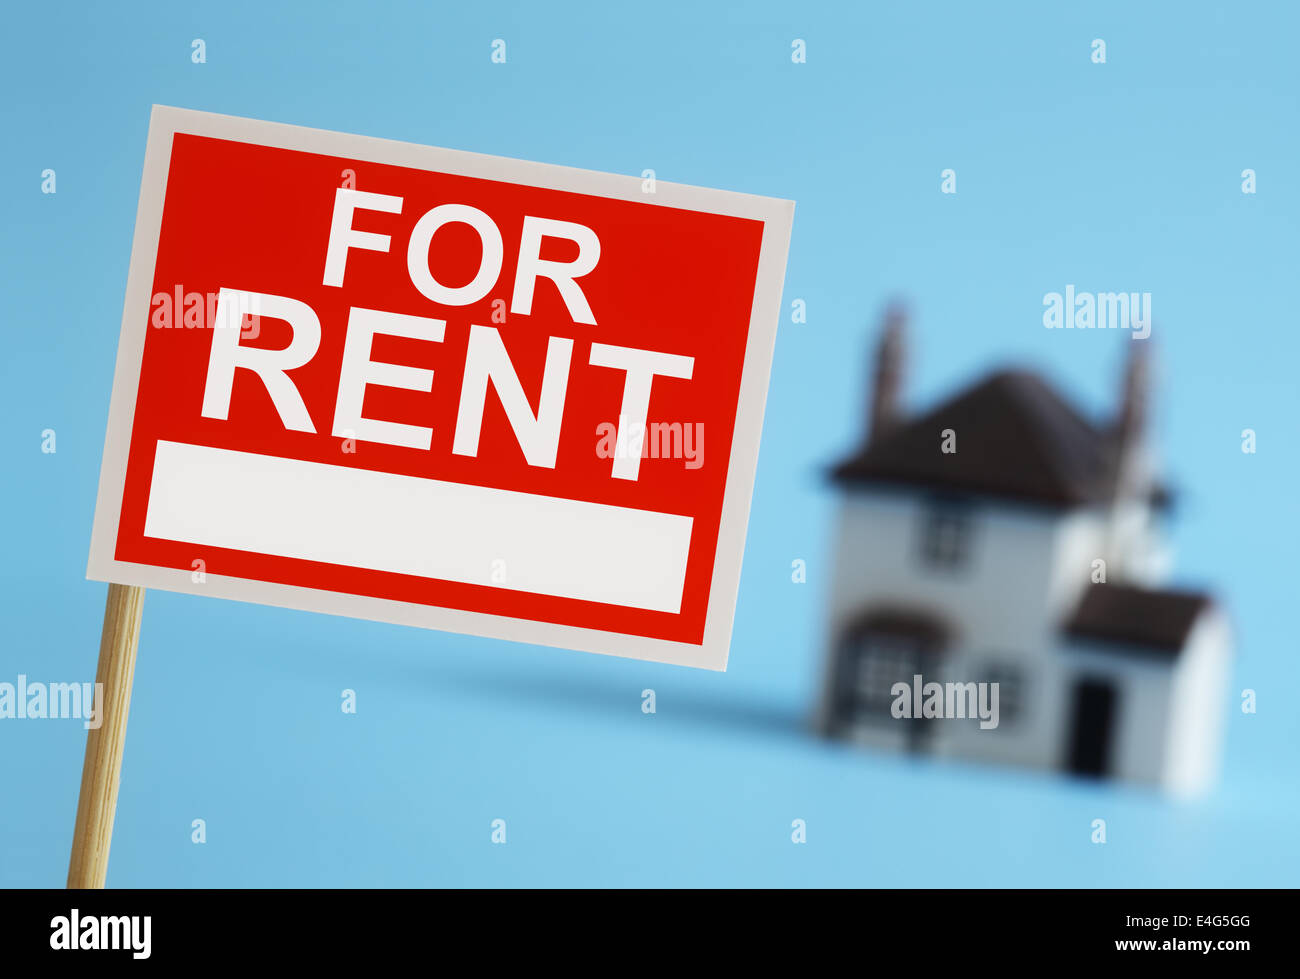 Real estate agent for rent sign - Stock Image